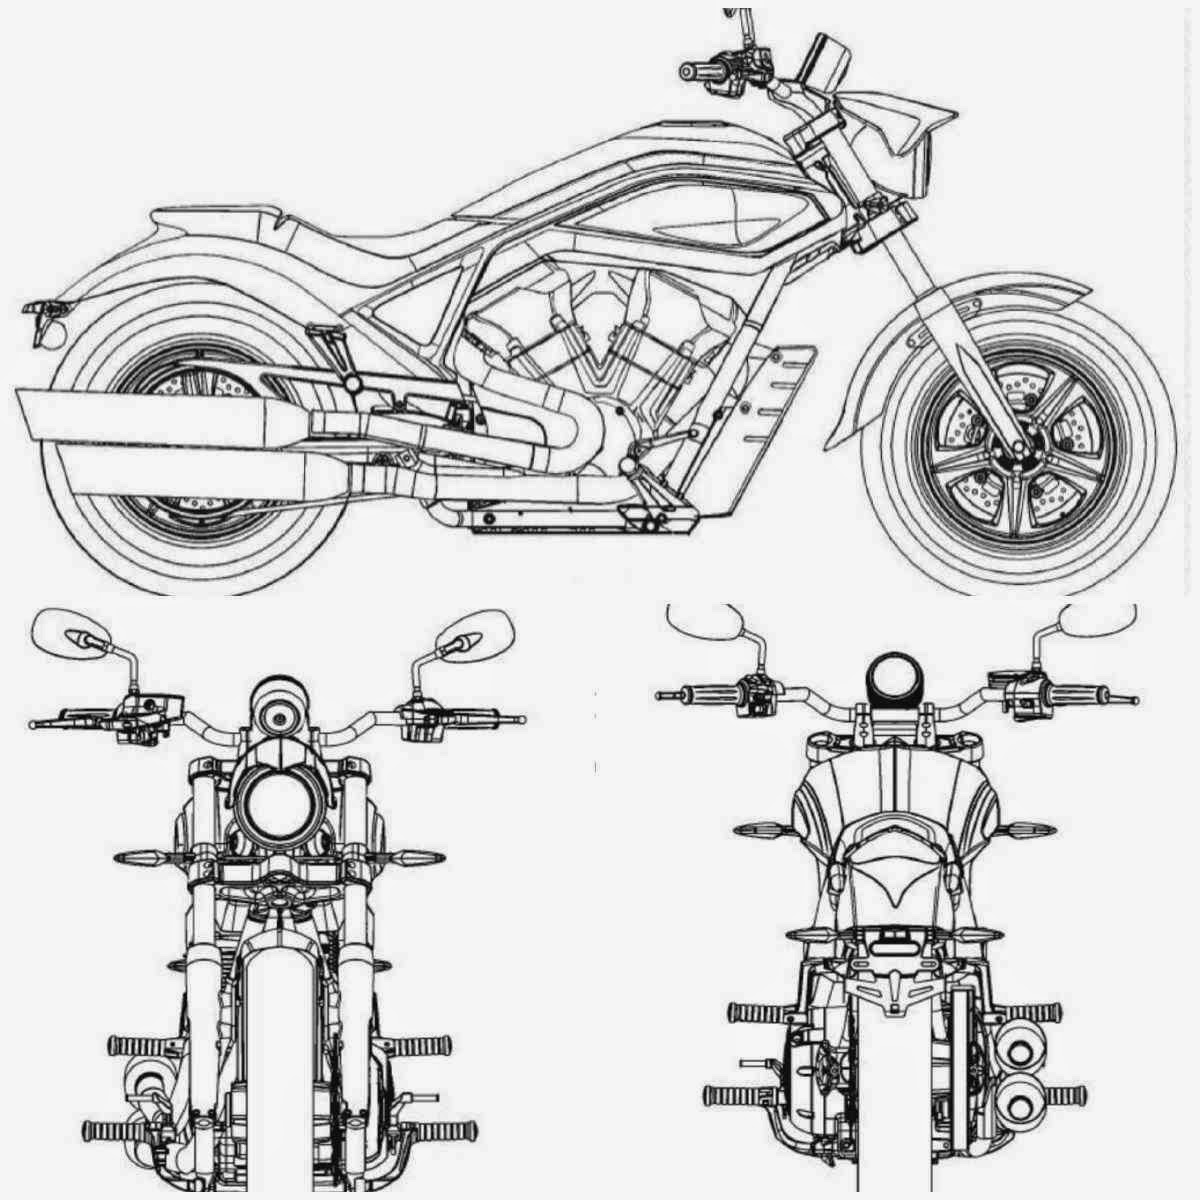 bmw rrt wiring diagram bmw discover your wiring diagram 2007 bmw r1200gs wiring diagram 2007 bmw r1200gs wiring diagram as well float activated alarm